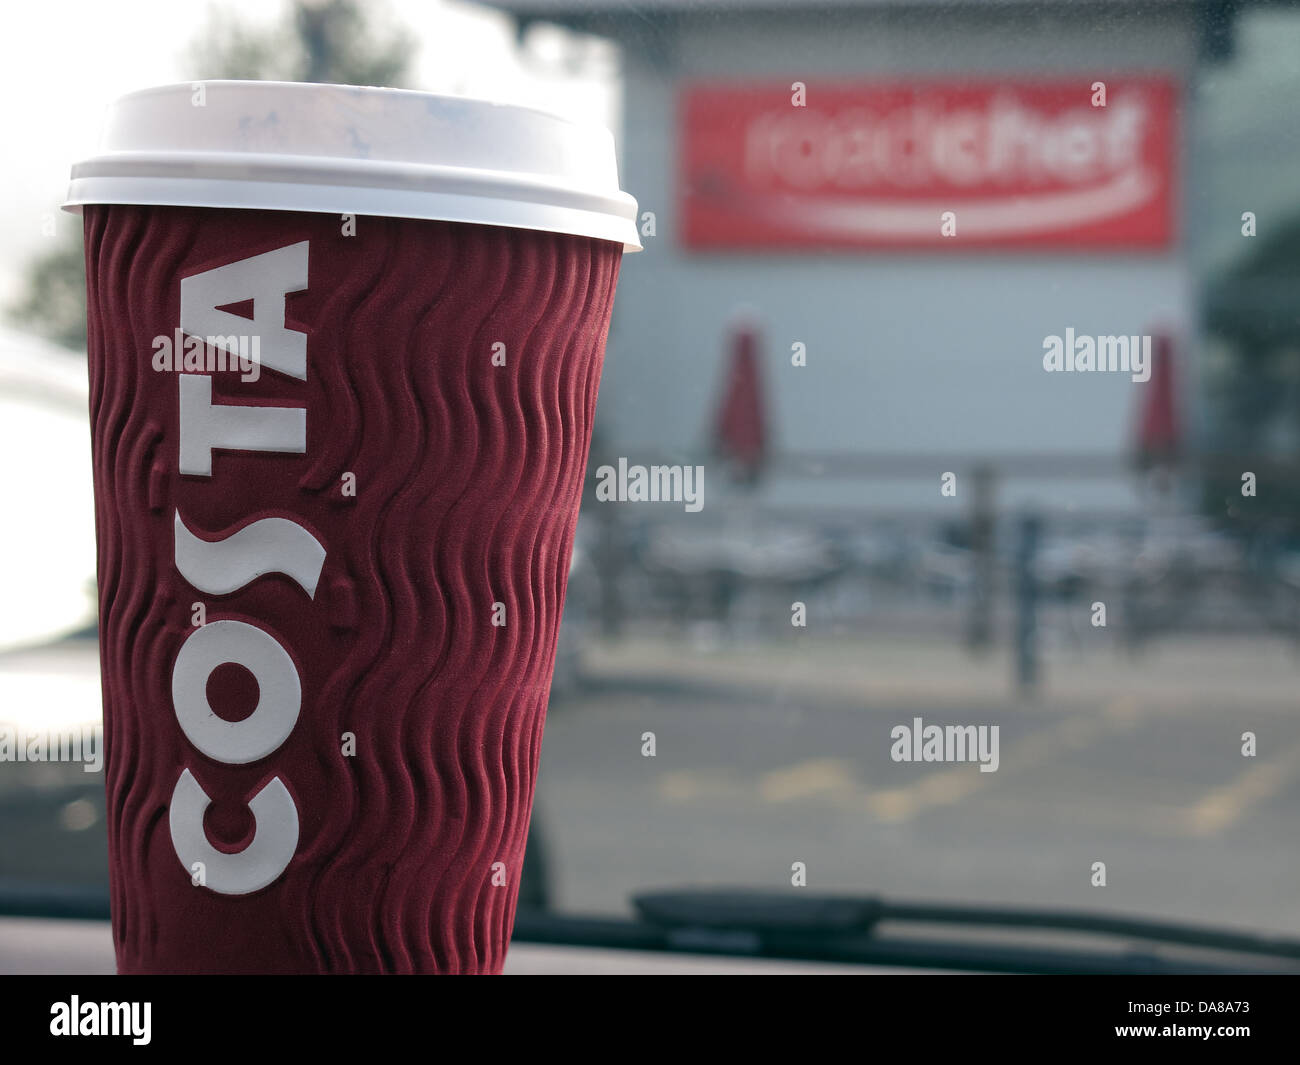 A takeaway cup of Costa coffee at the Roadchef motorway services M5 Strensham southbound - Stock Image